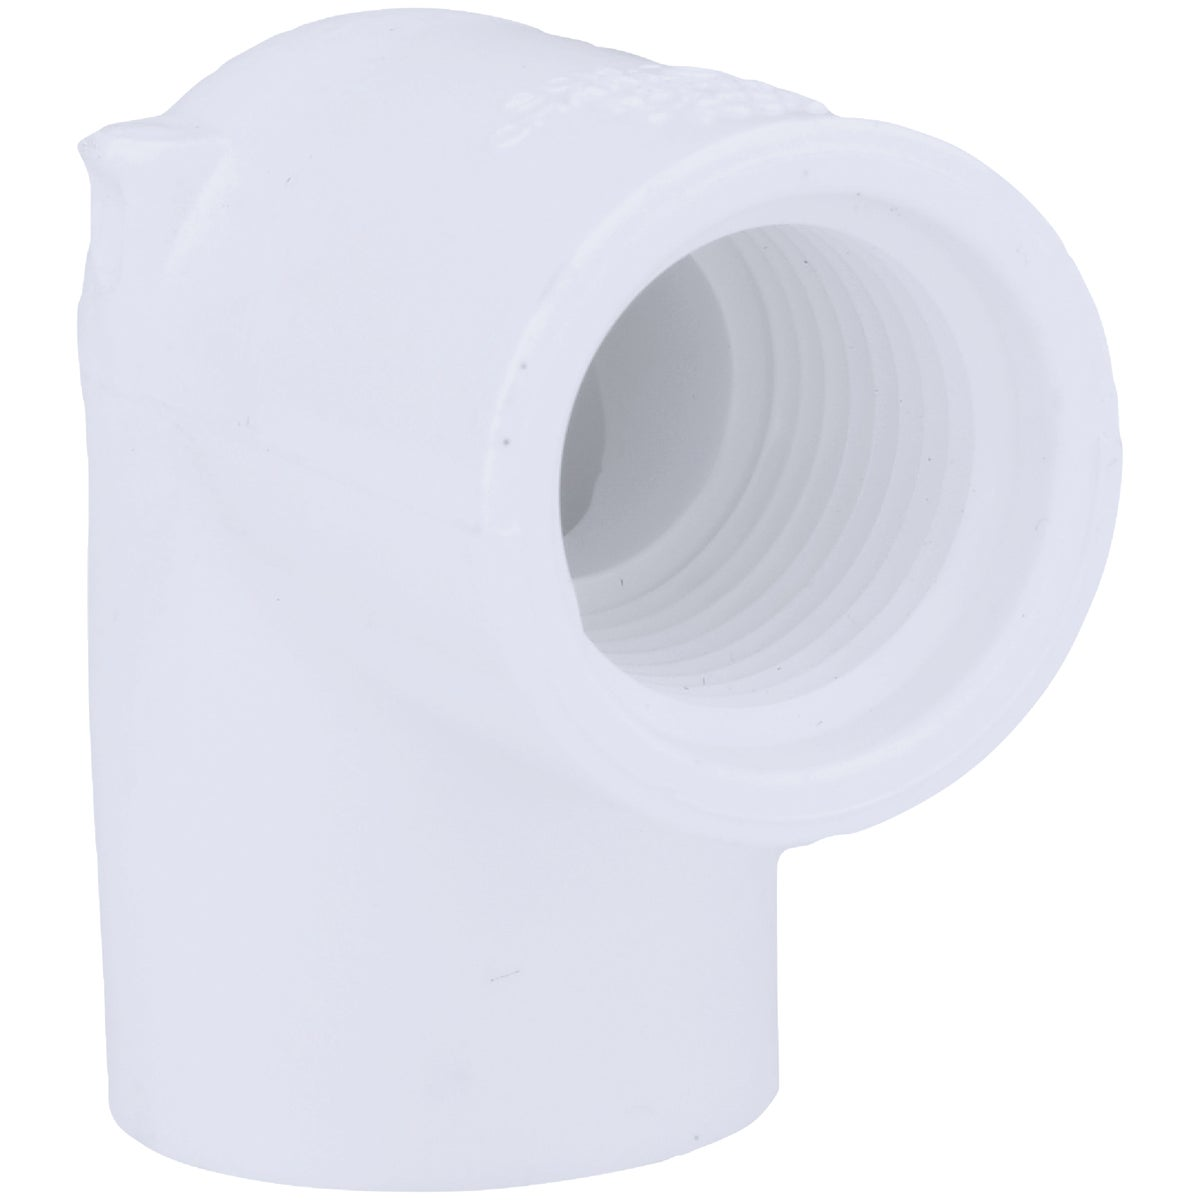 "1/2"" PVC FIPXS 90D ELBOW - 33905 by Genova Inc"